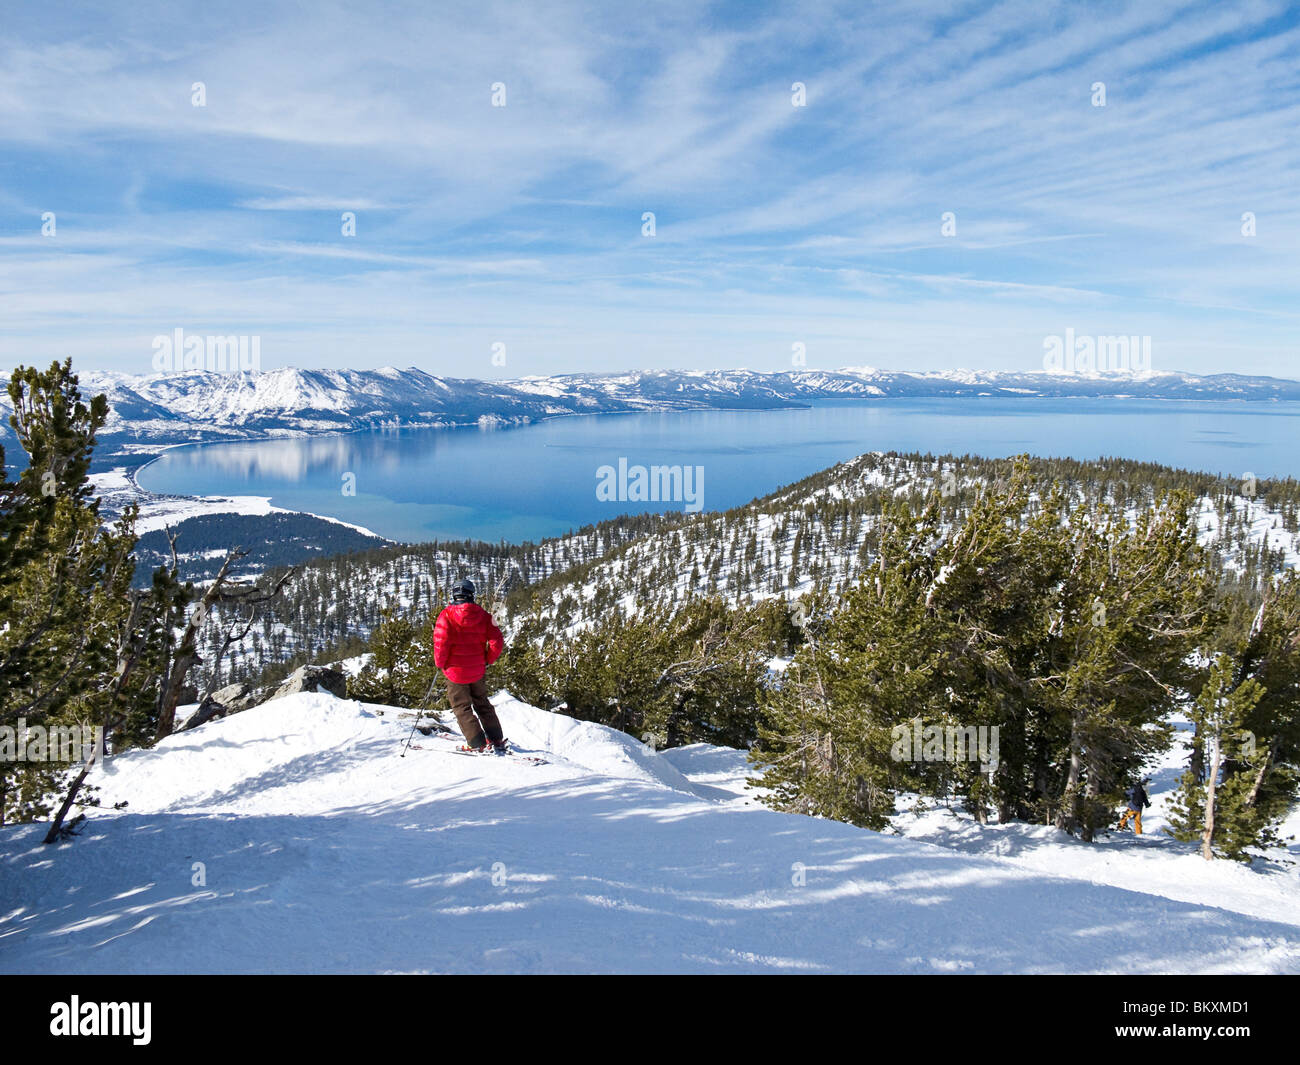 Skier admires view of Lake Tahoe from the ski slope of Heavenly Mountain Resort, USA. Winter - Stock Image